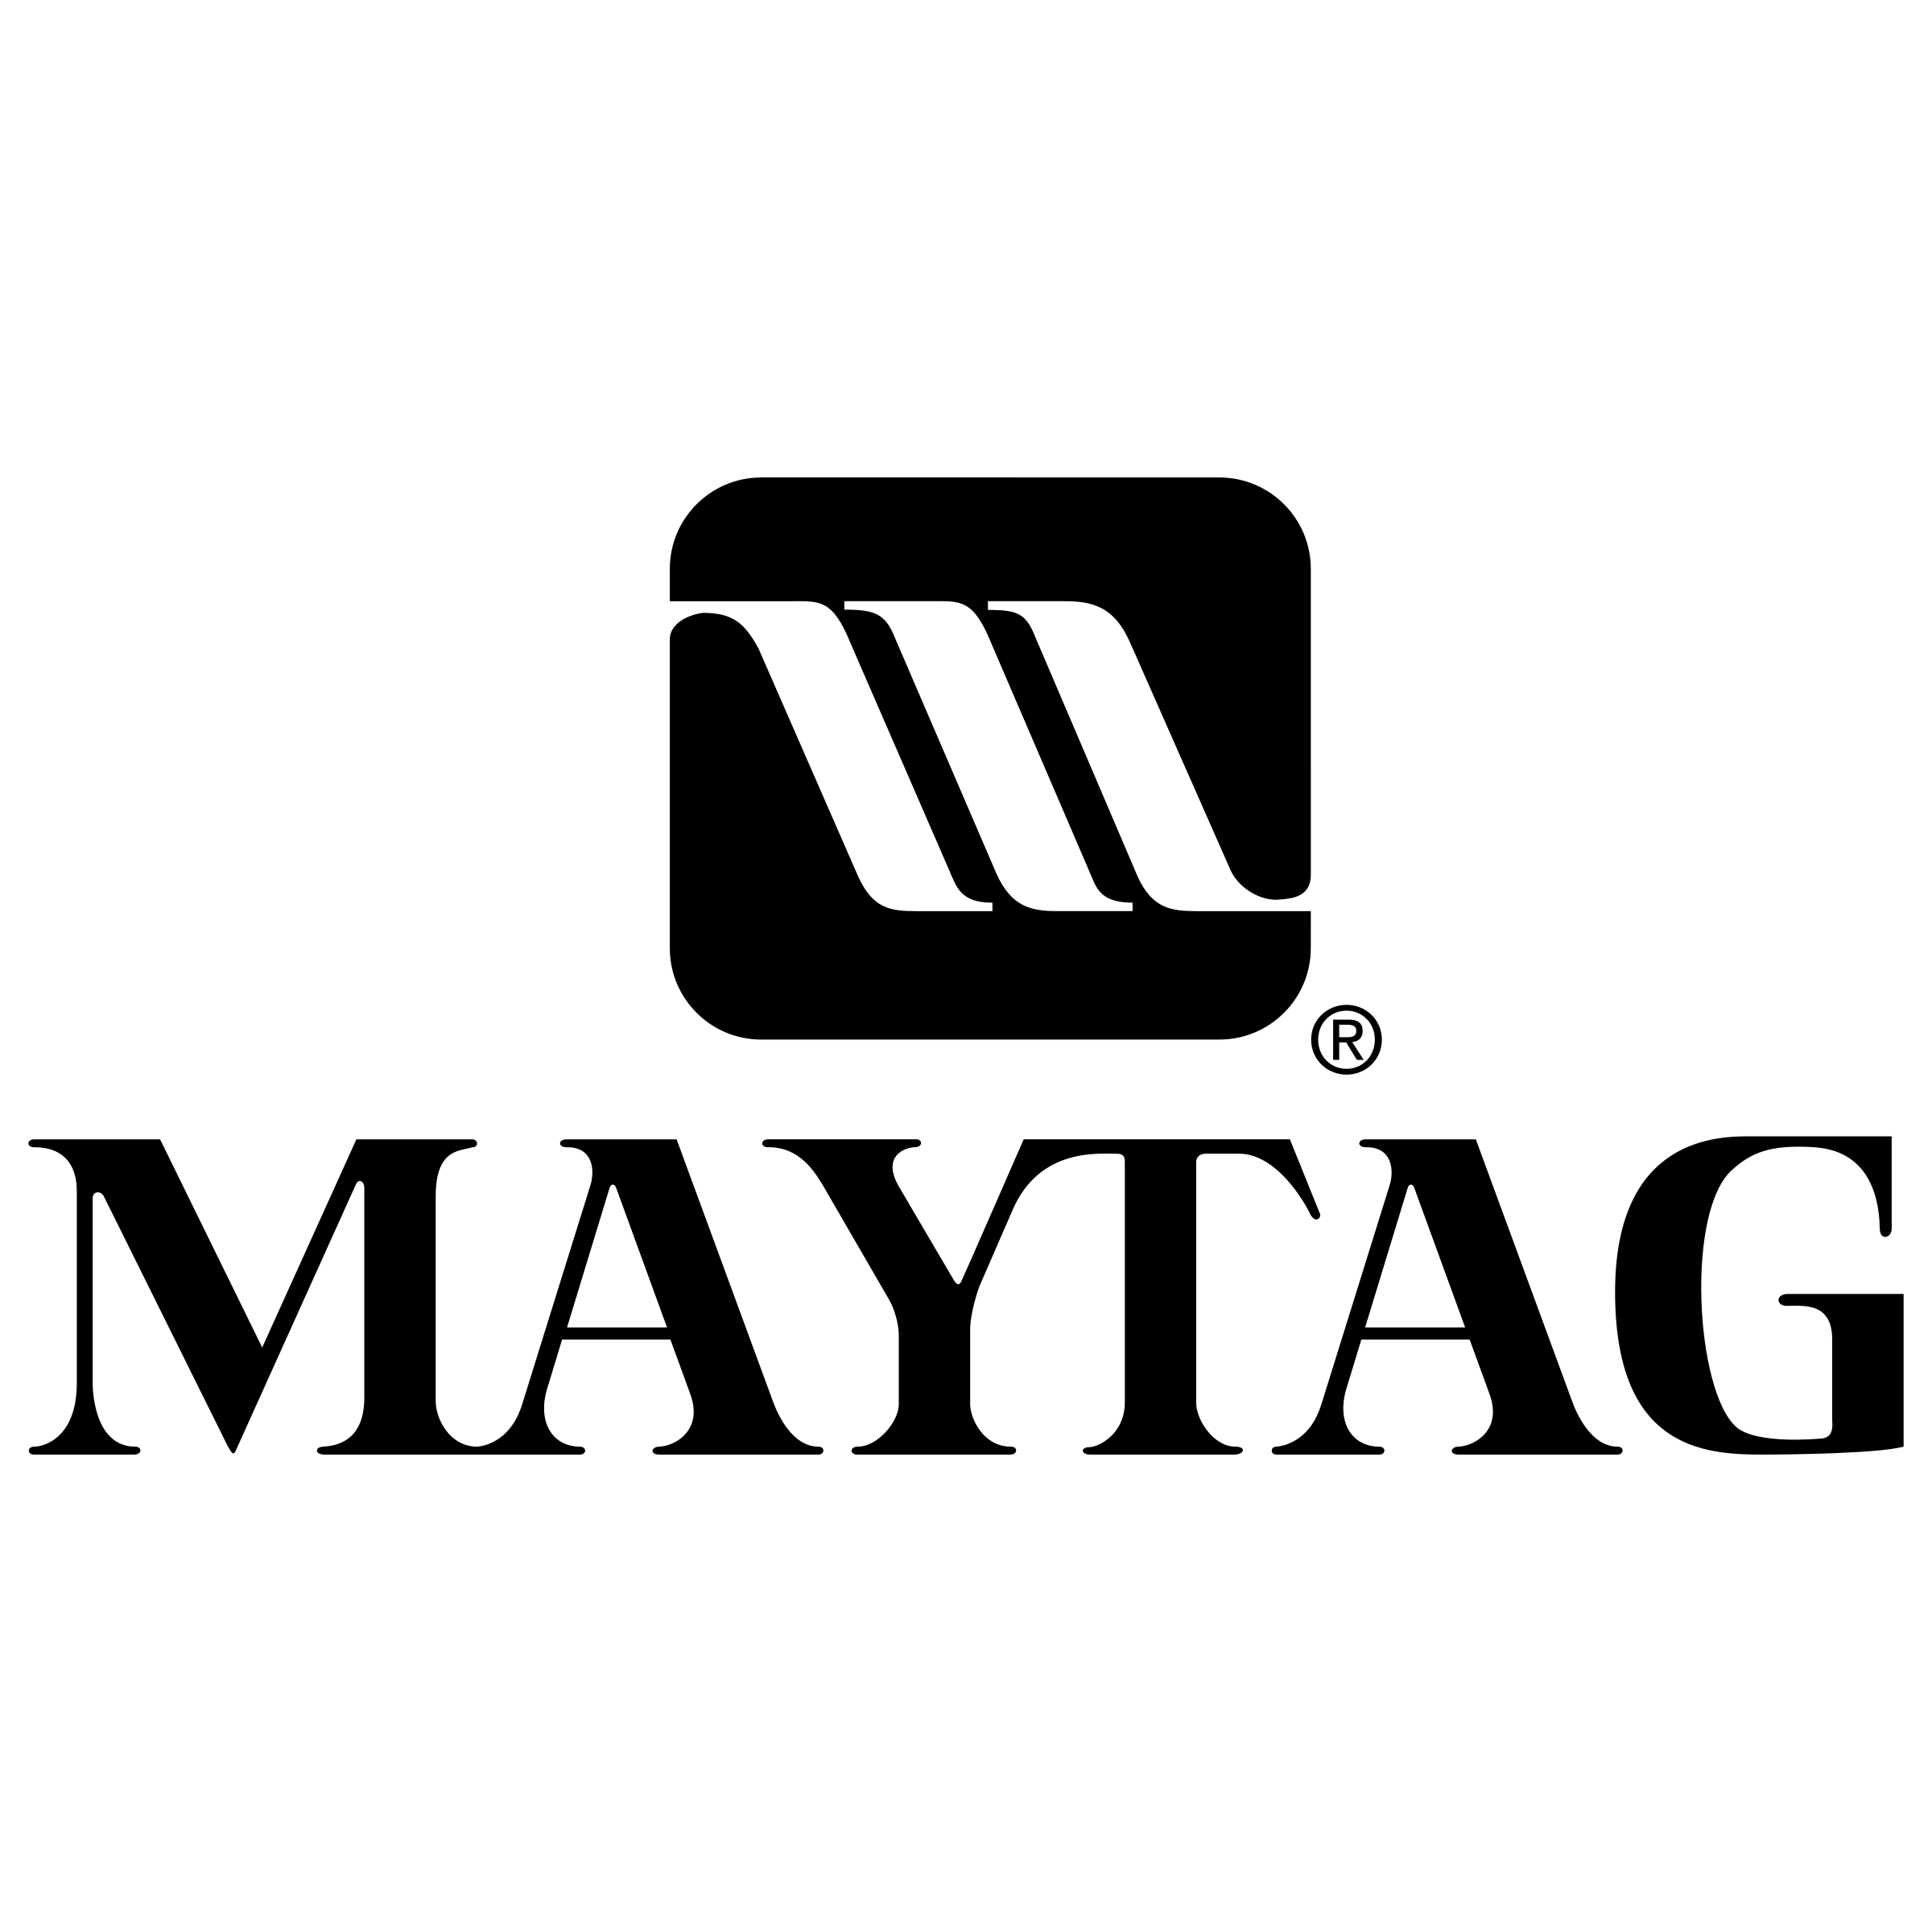 Maytag Logo - Maytag Logo PNG Transparent & SVG Vector - Freebie Supply